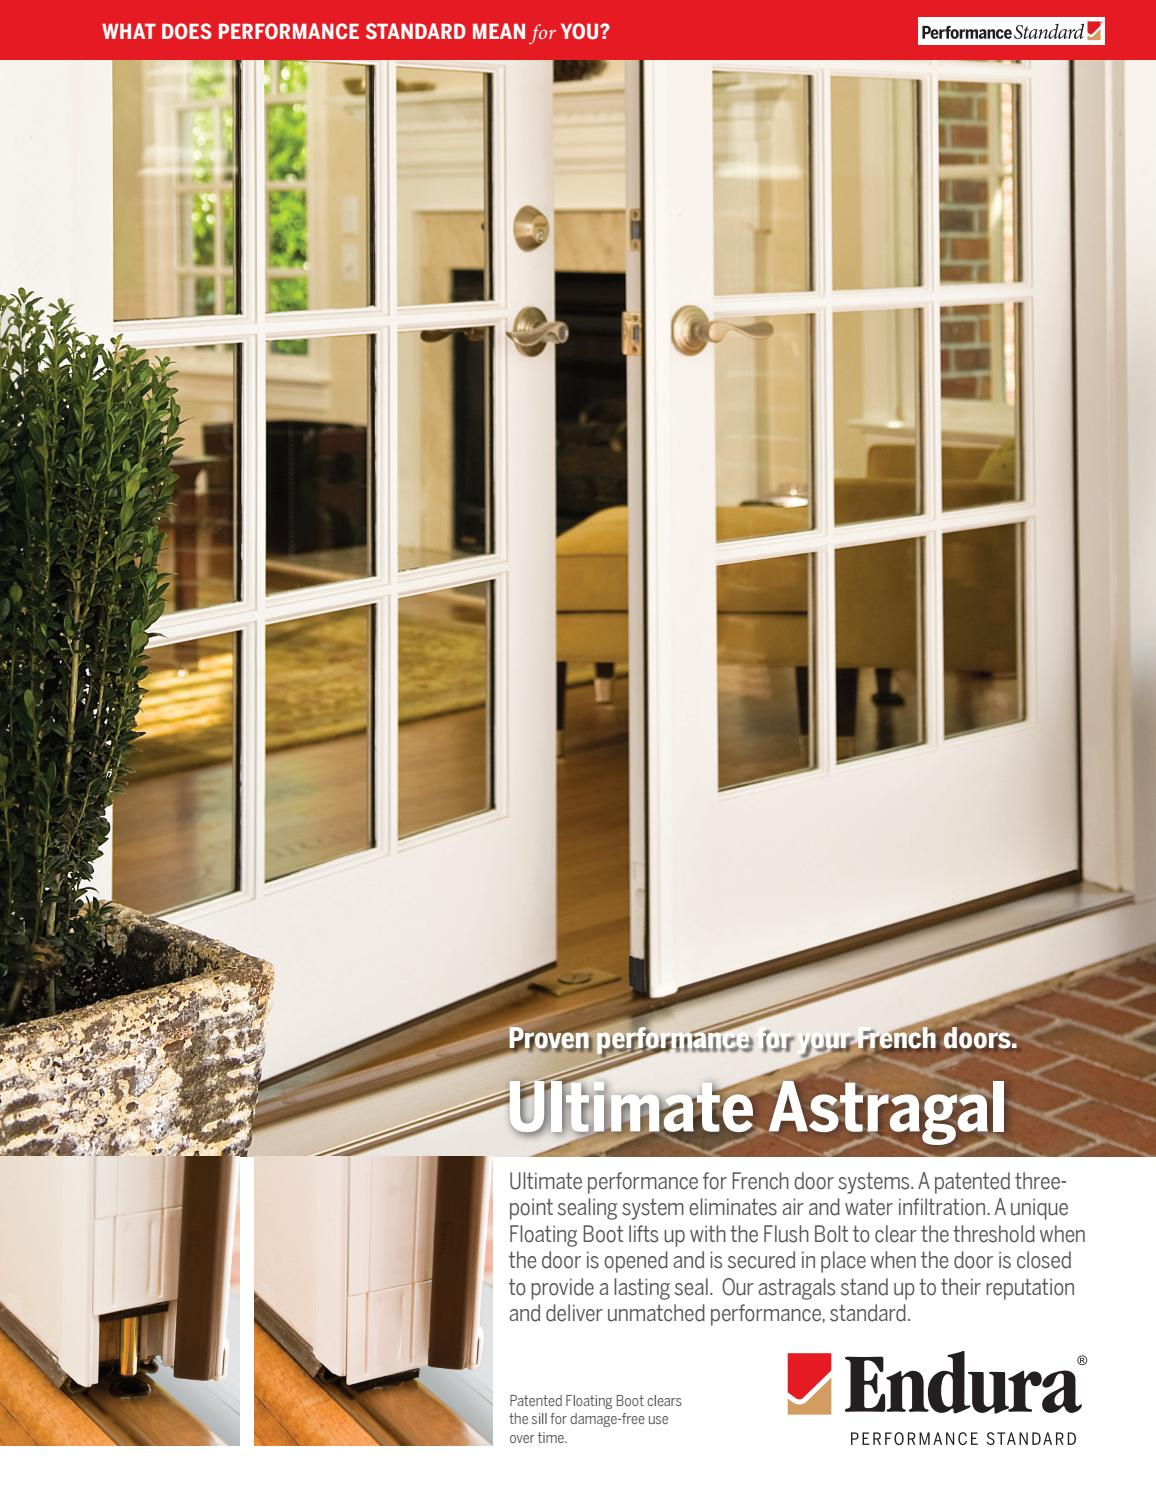 Endura Utimate Astragal By Clearymillwork Issuu